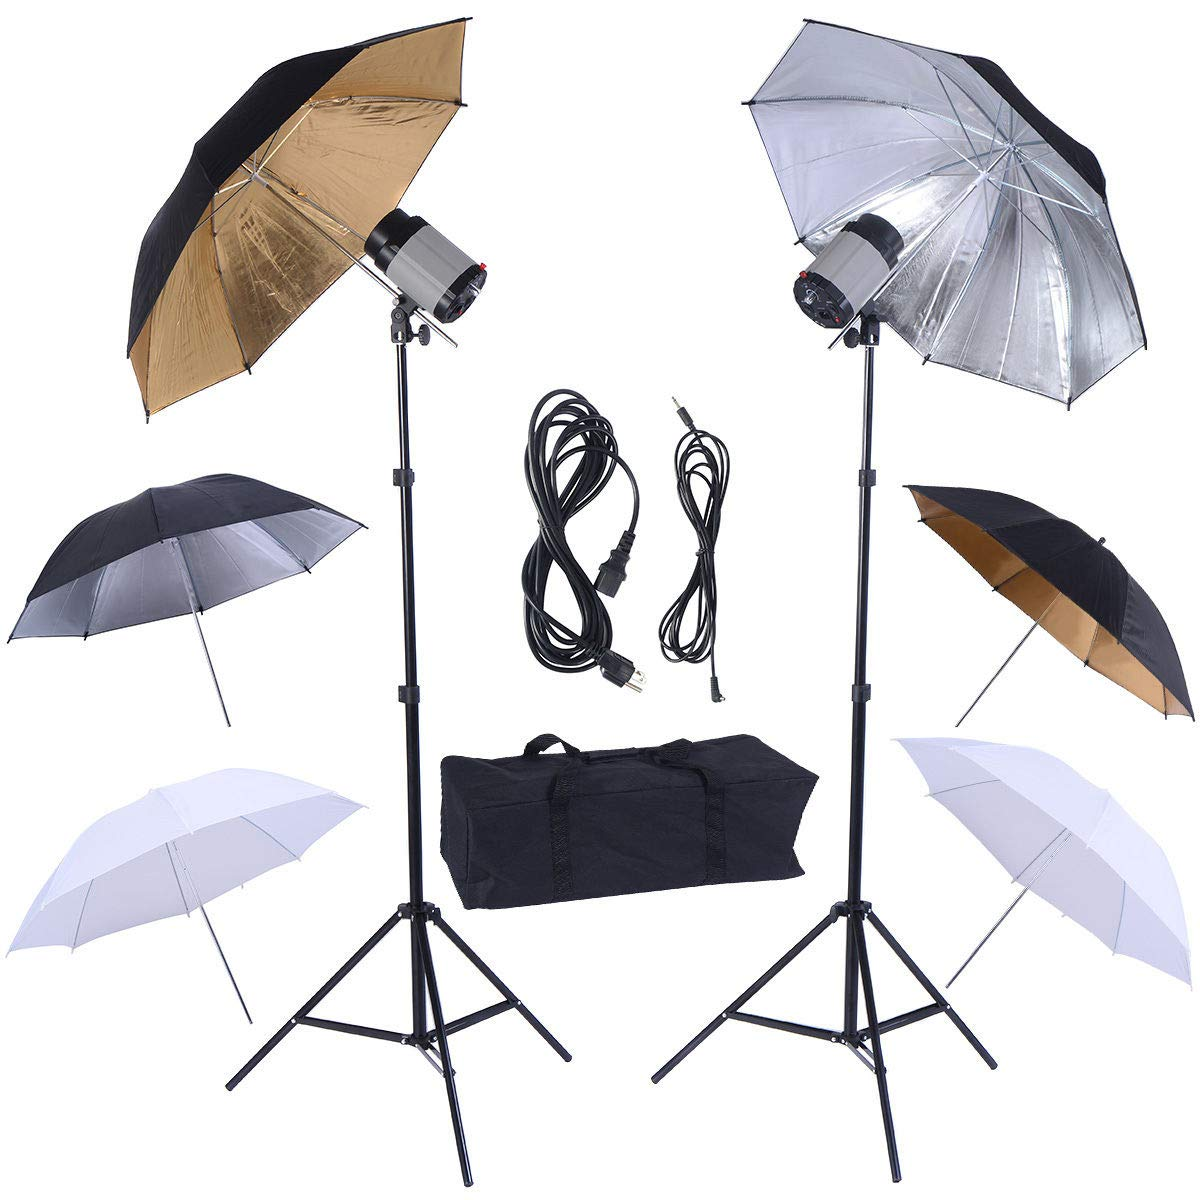 Safstar Photography Photo Studio 320W Monolights Strobe Flash Light Umbrella Lighting Kit - 2 x 160W Studio Flash/Strobe/Speedlite, 2 x Lighting Stands, 6 x 33 Umbrellas, 1x Heavy Duty Carrying Case by S AFSTAR